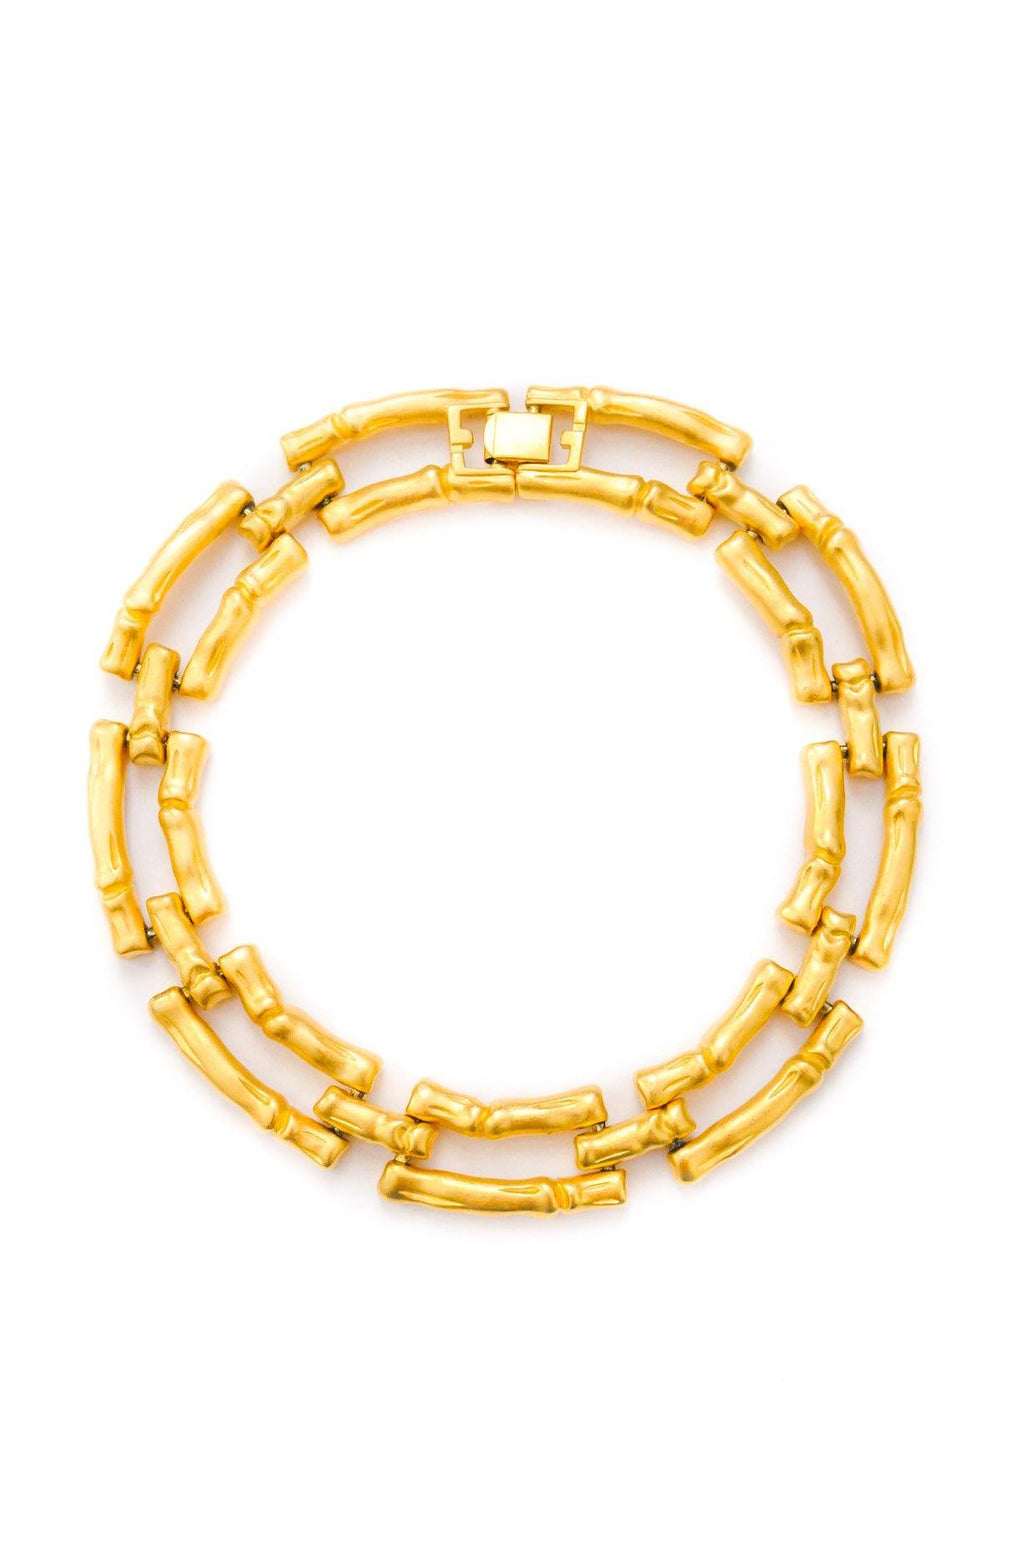 Givenchy Statement Bamboo Necklace